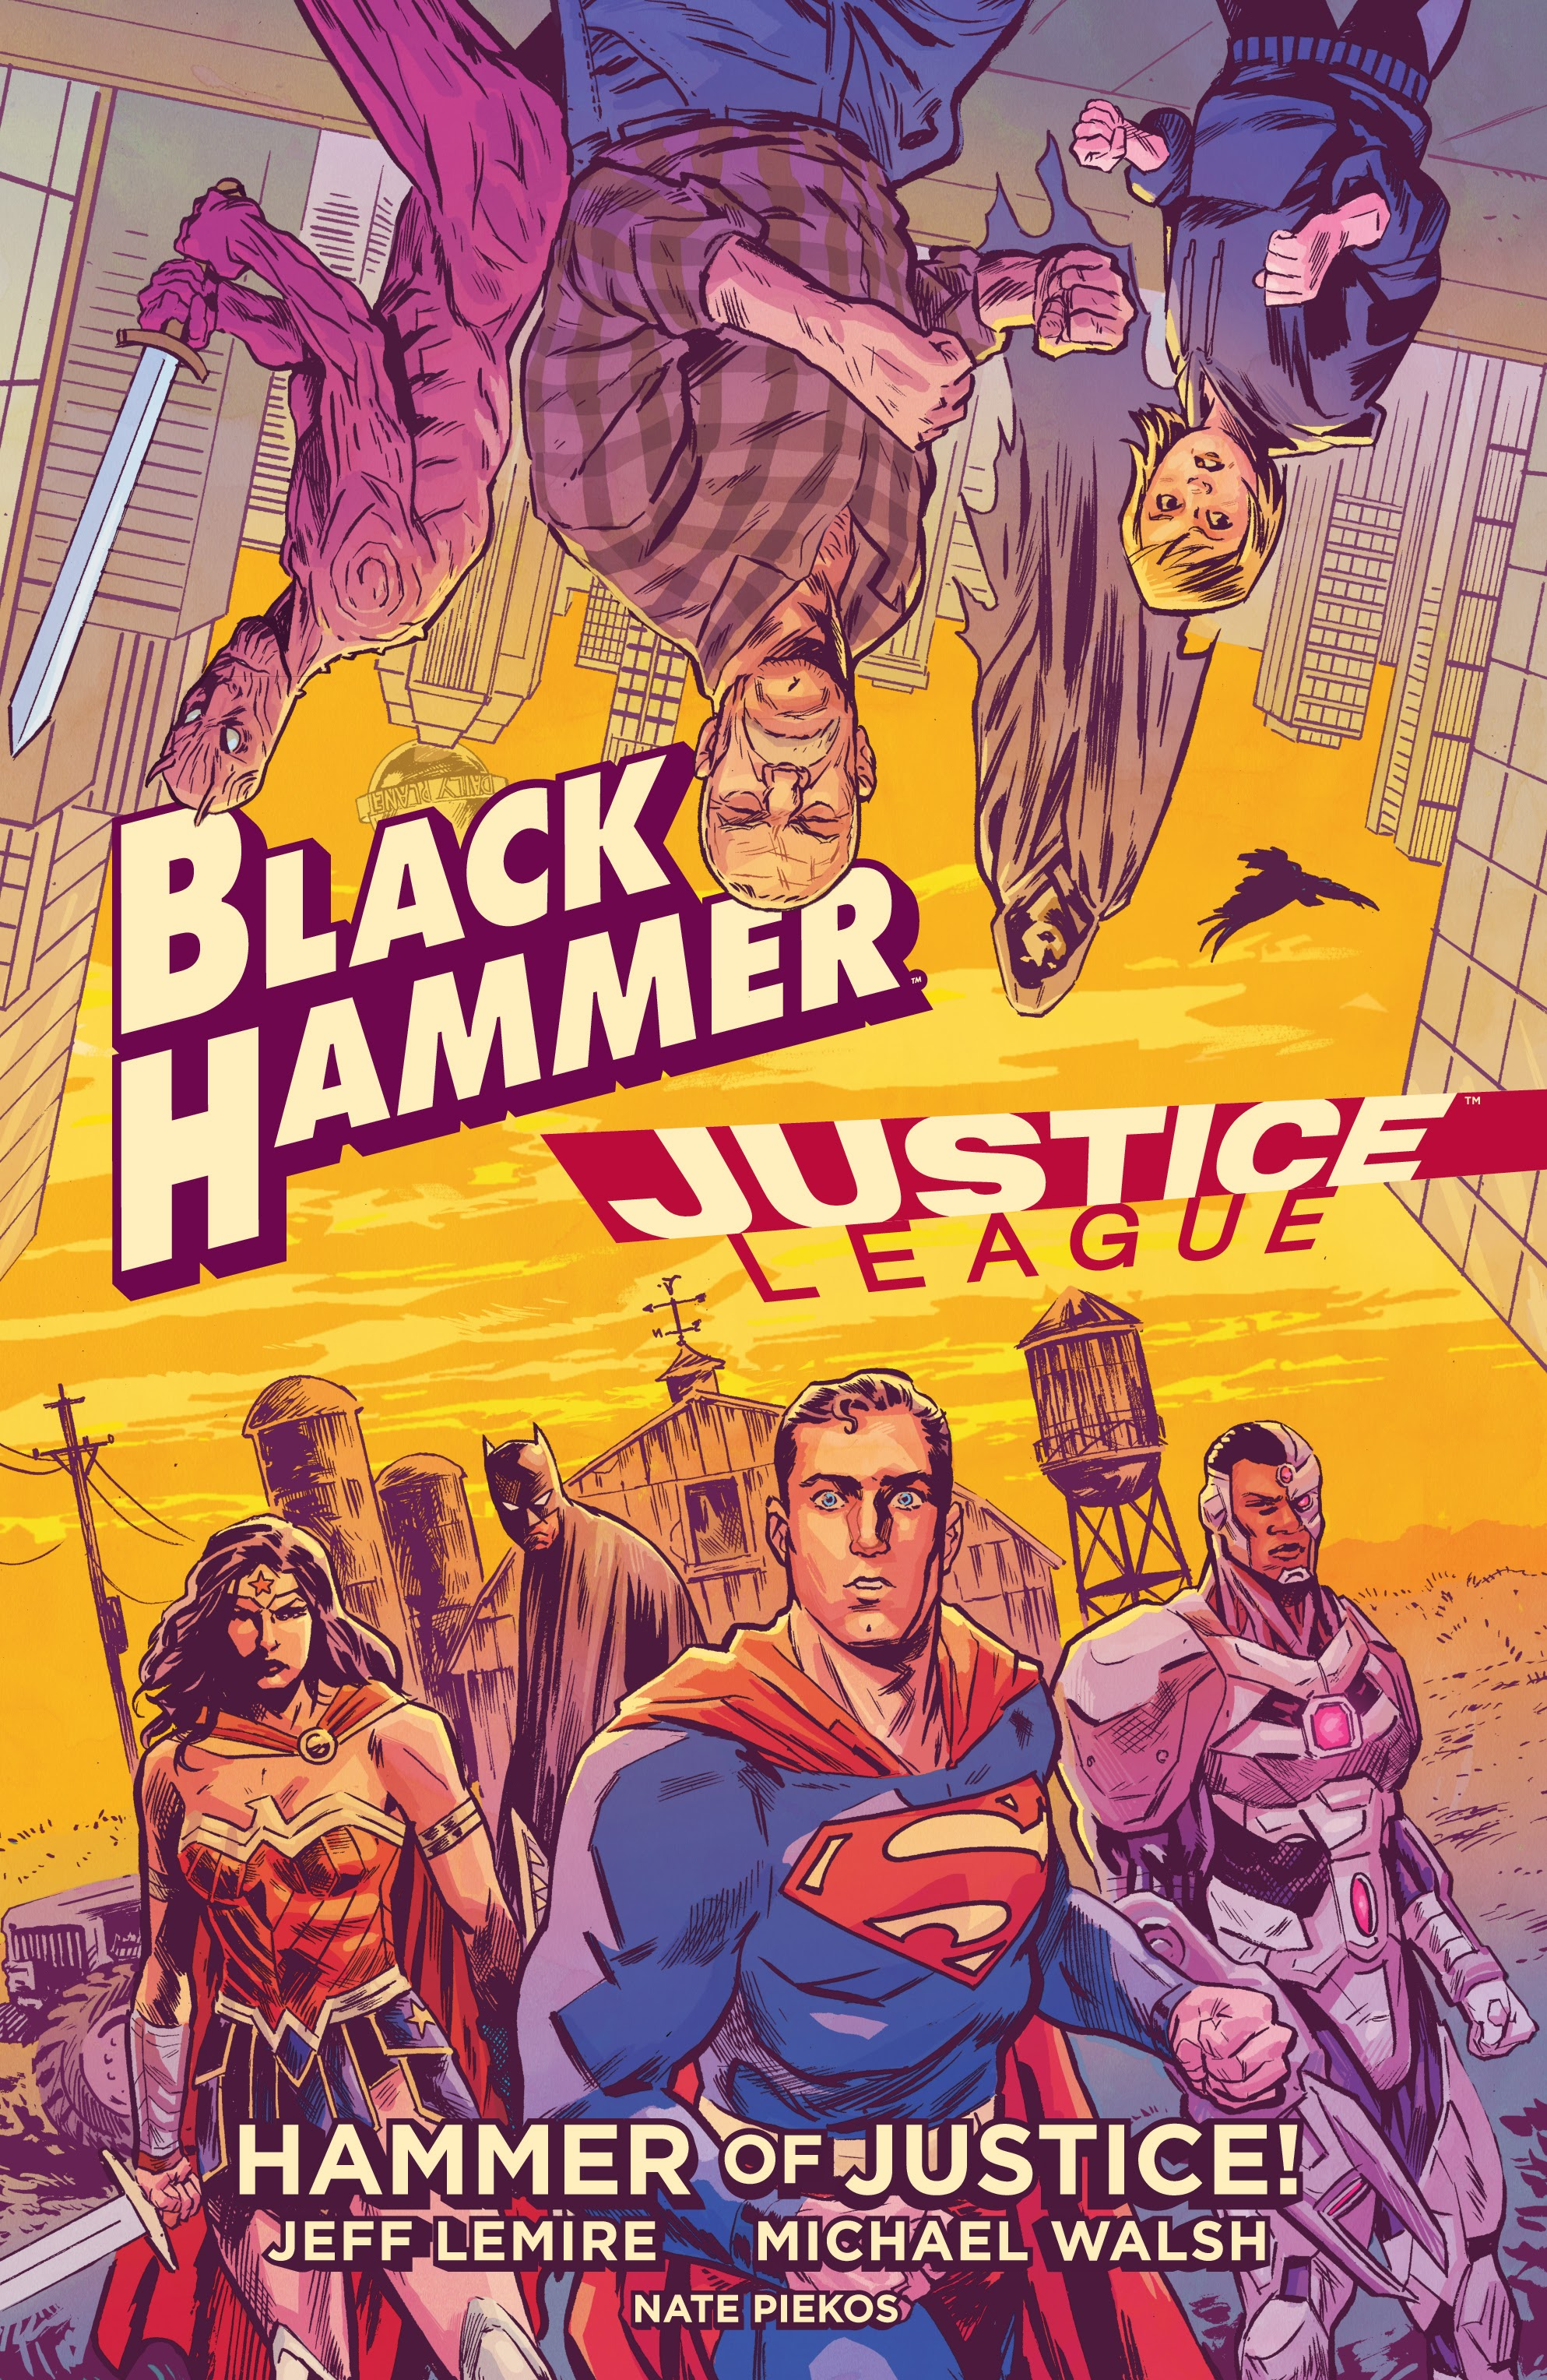 Black Hammer/Justice League: Hammer of Justice! _TPB_(Part_1) Page 1